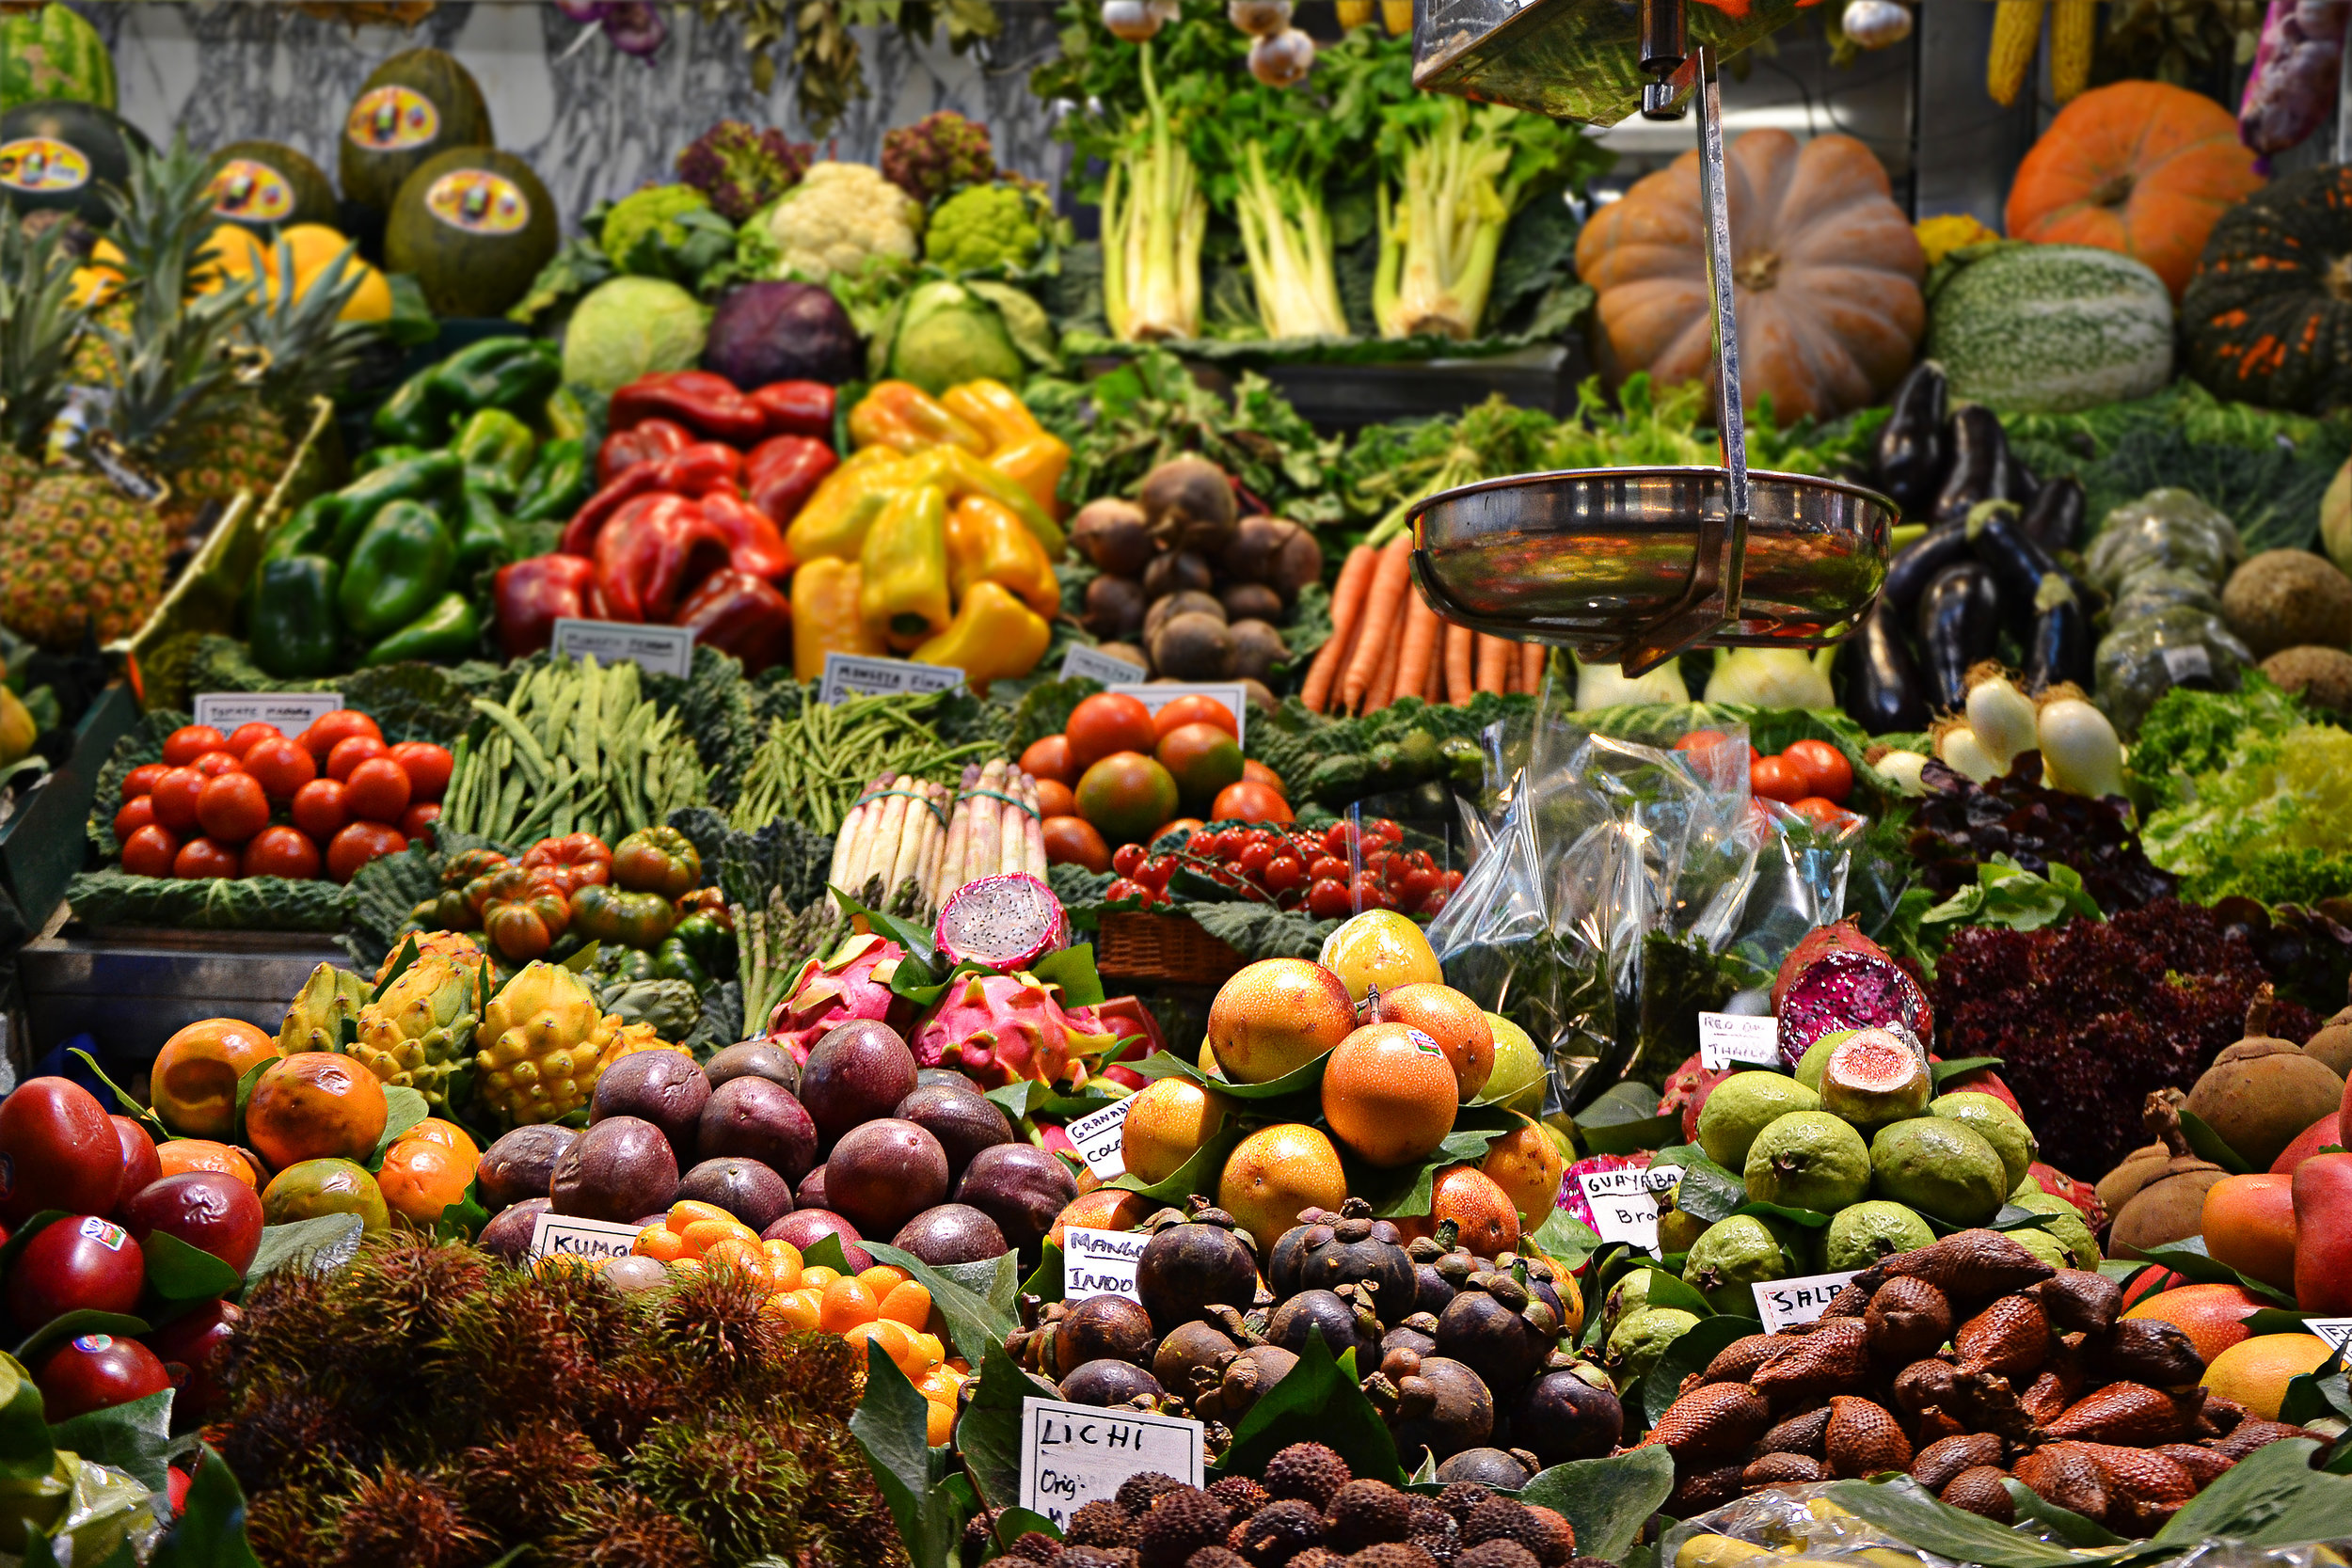 Yebo fresh - Revolutionizing grocery shoping for the people who need it most